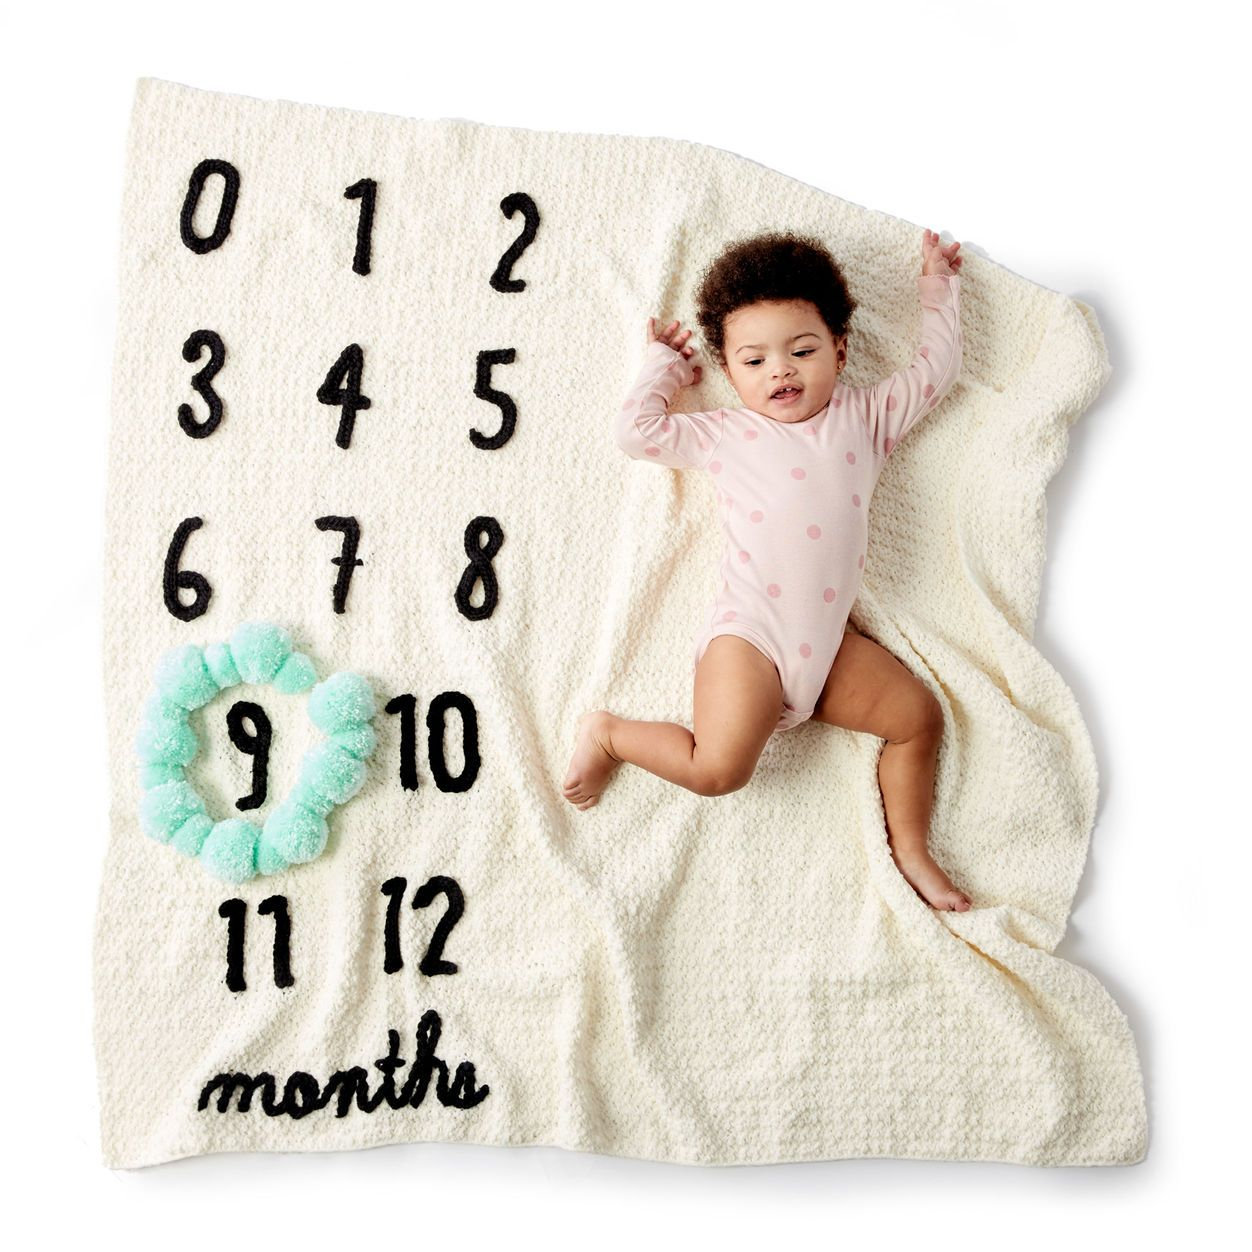 Bernat Watch Me Grow Blanket | Crochet | Pinterest